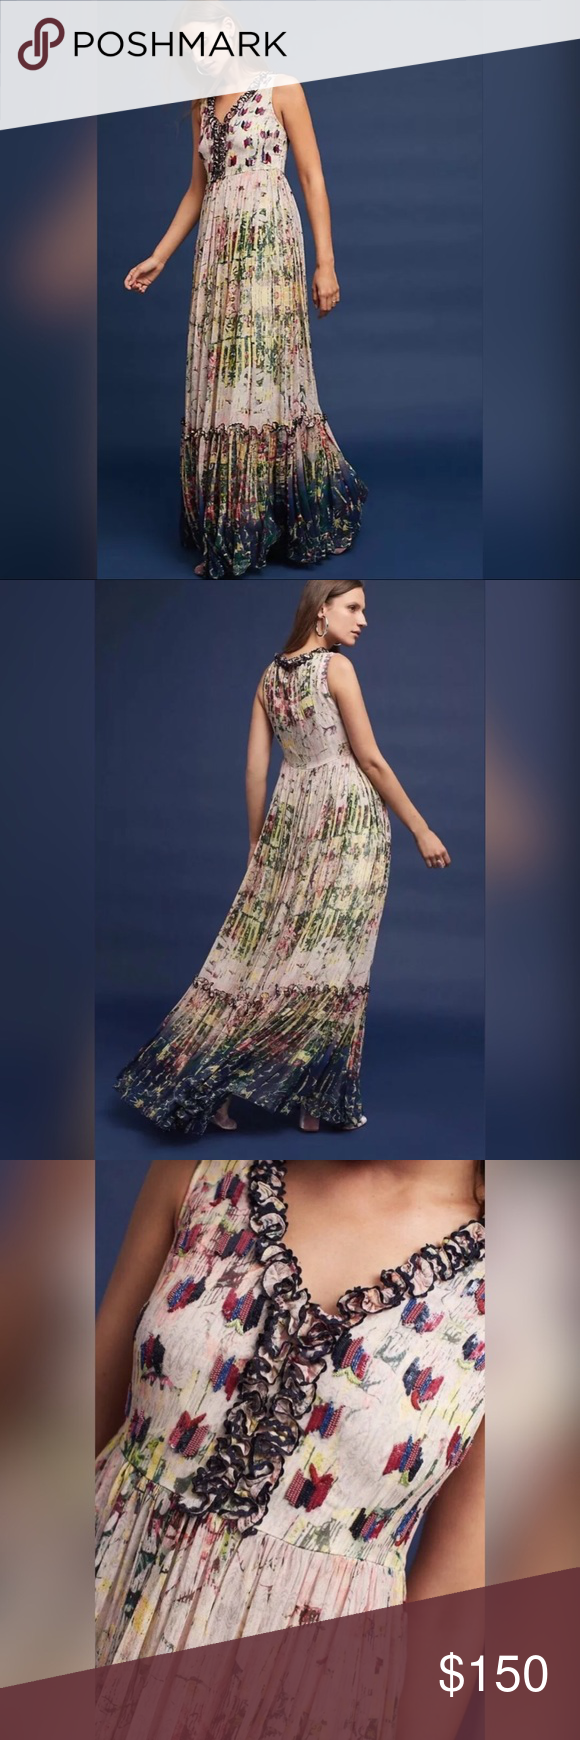 1795050535112 NEW Anthropologie Cydney Tiered Maxi Dress Bhanuni by Jyoti Details A  gathered waist flatters on this elegant floral maxi that's suited for any  occasion.